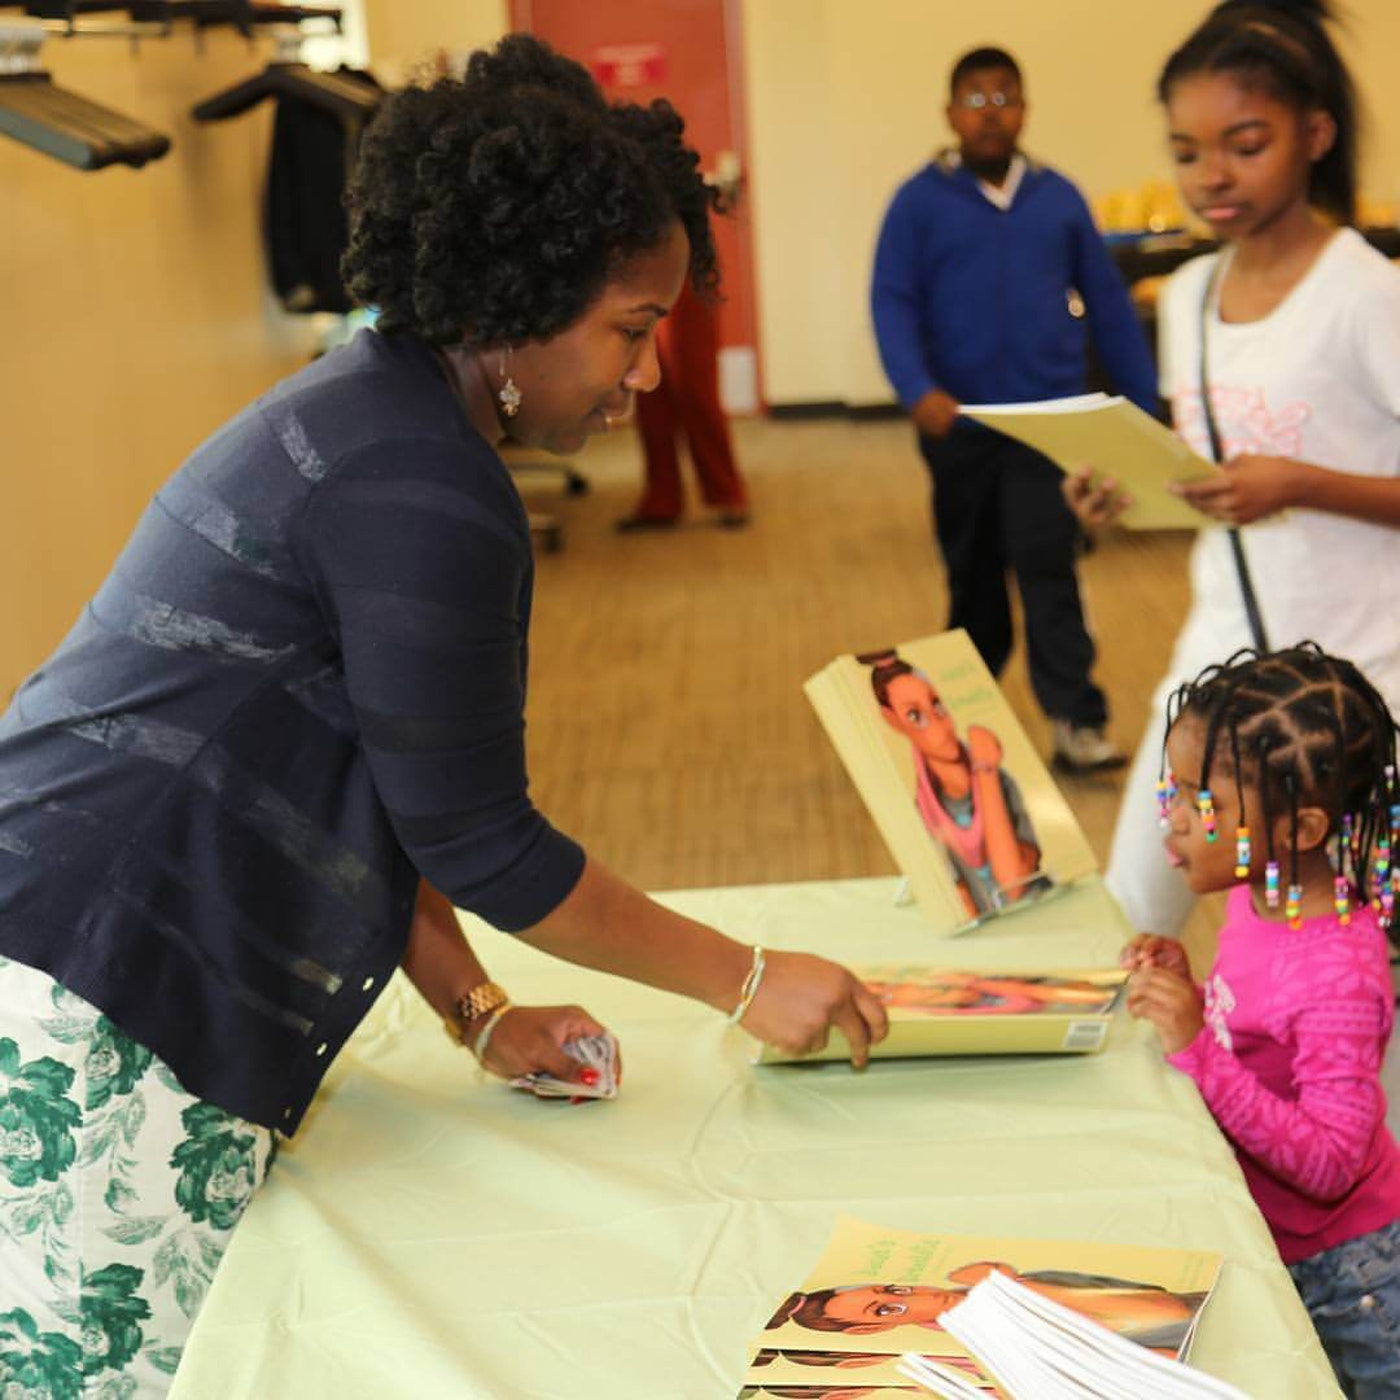 Financial guru Tasha Danielle encourages young people to get smart about their money.